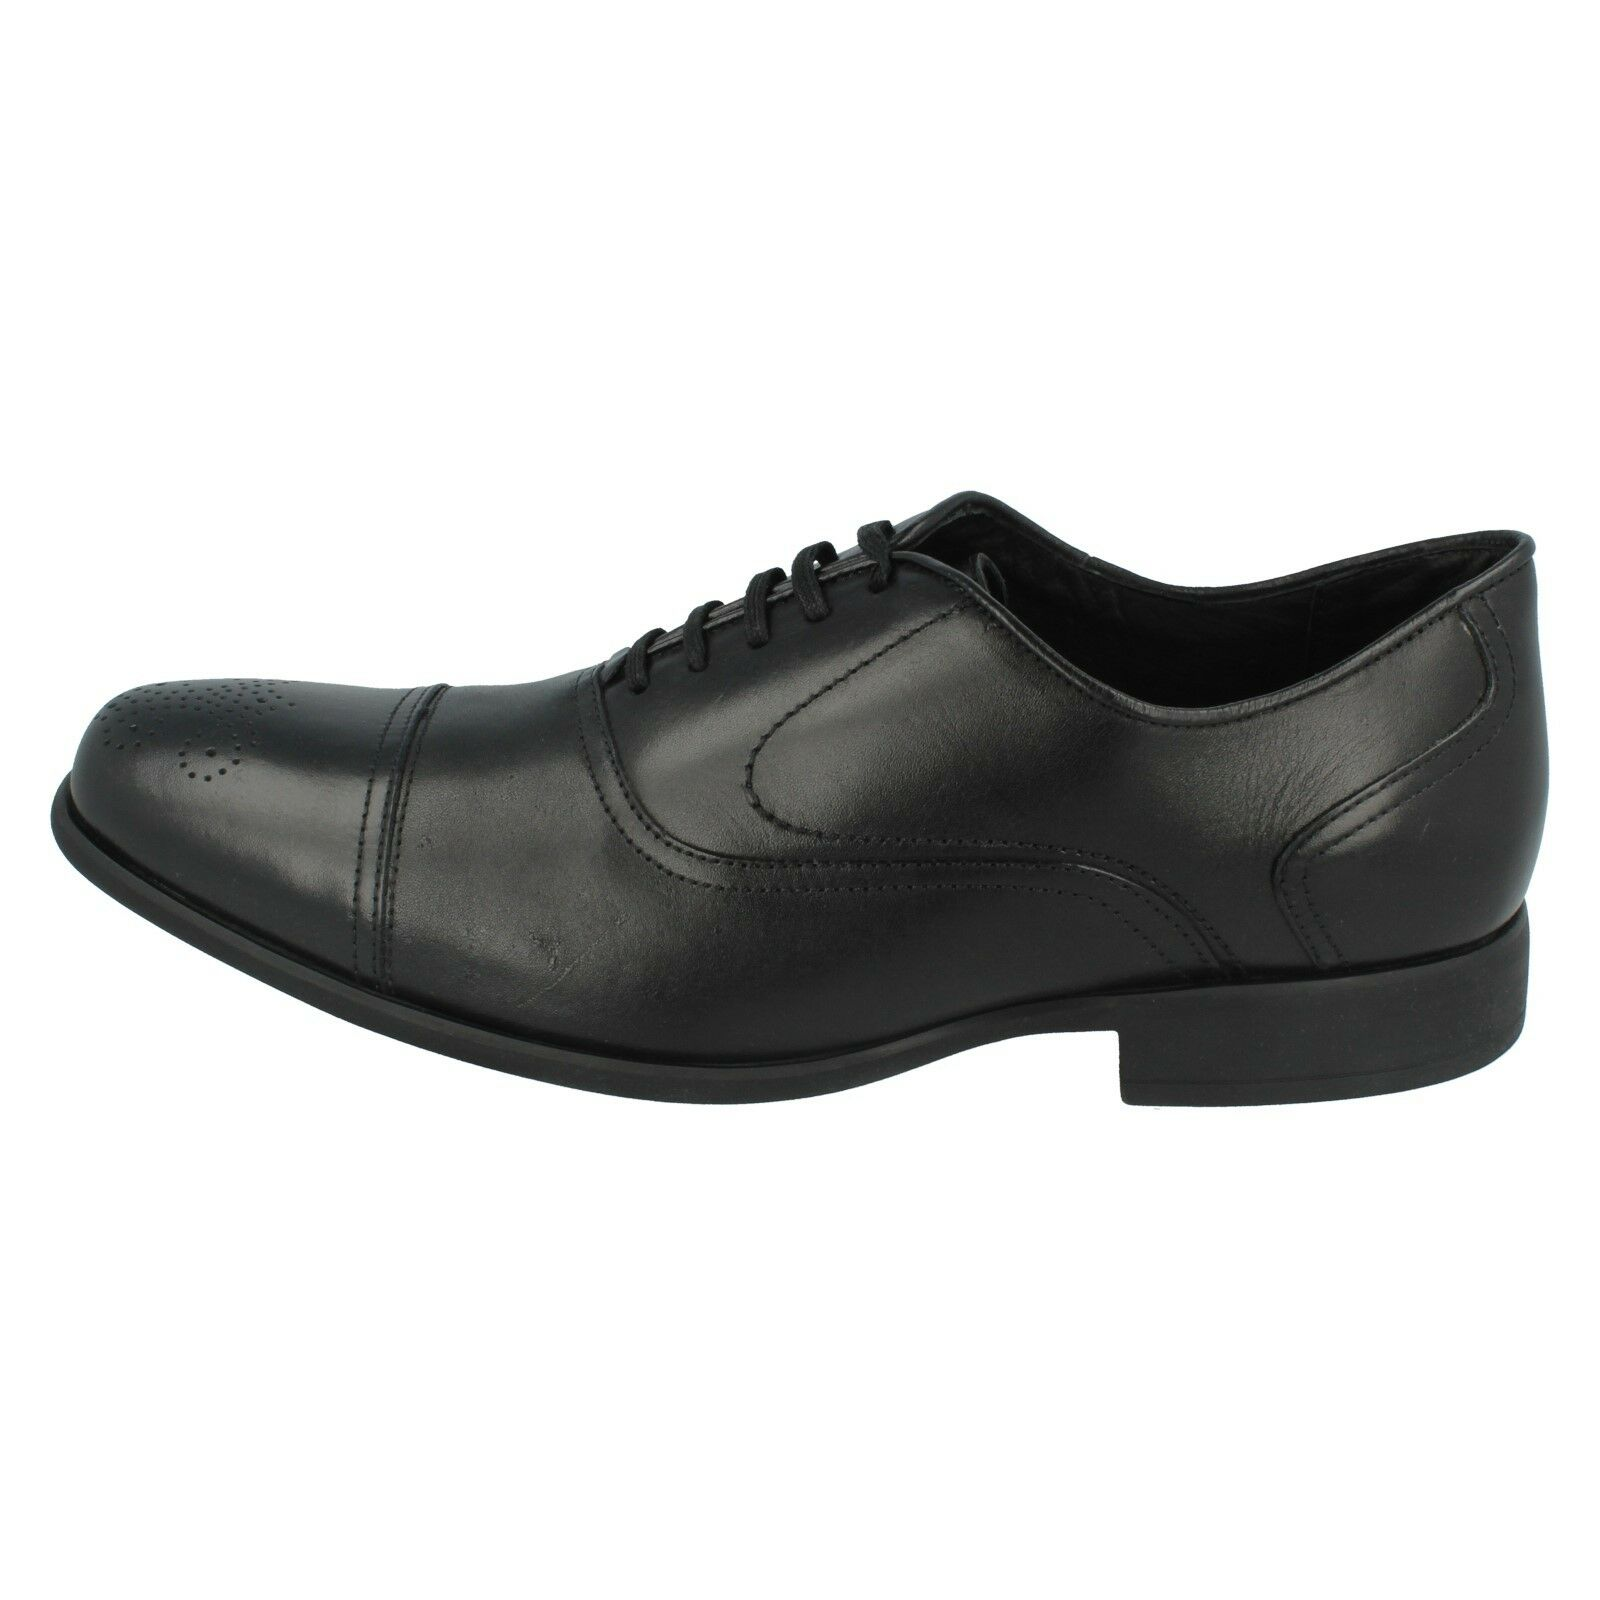 Mens Escada Black Lace up Shoes By Anatomic & co Retail Price £80.00